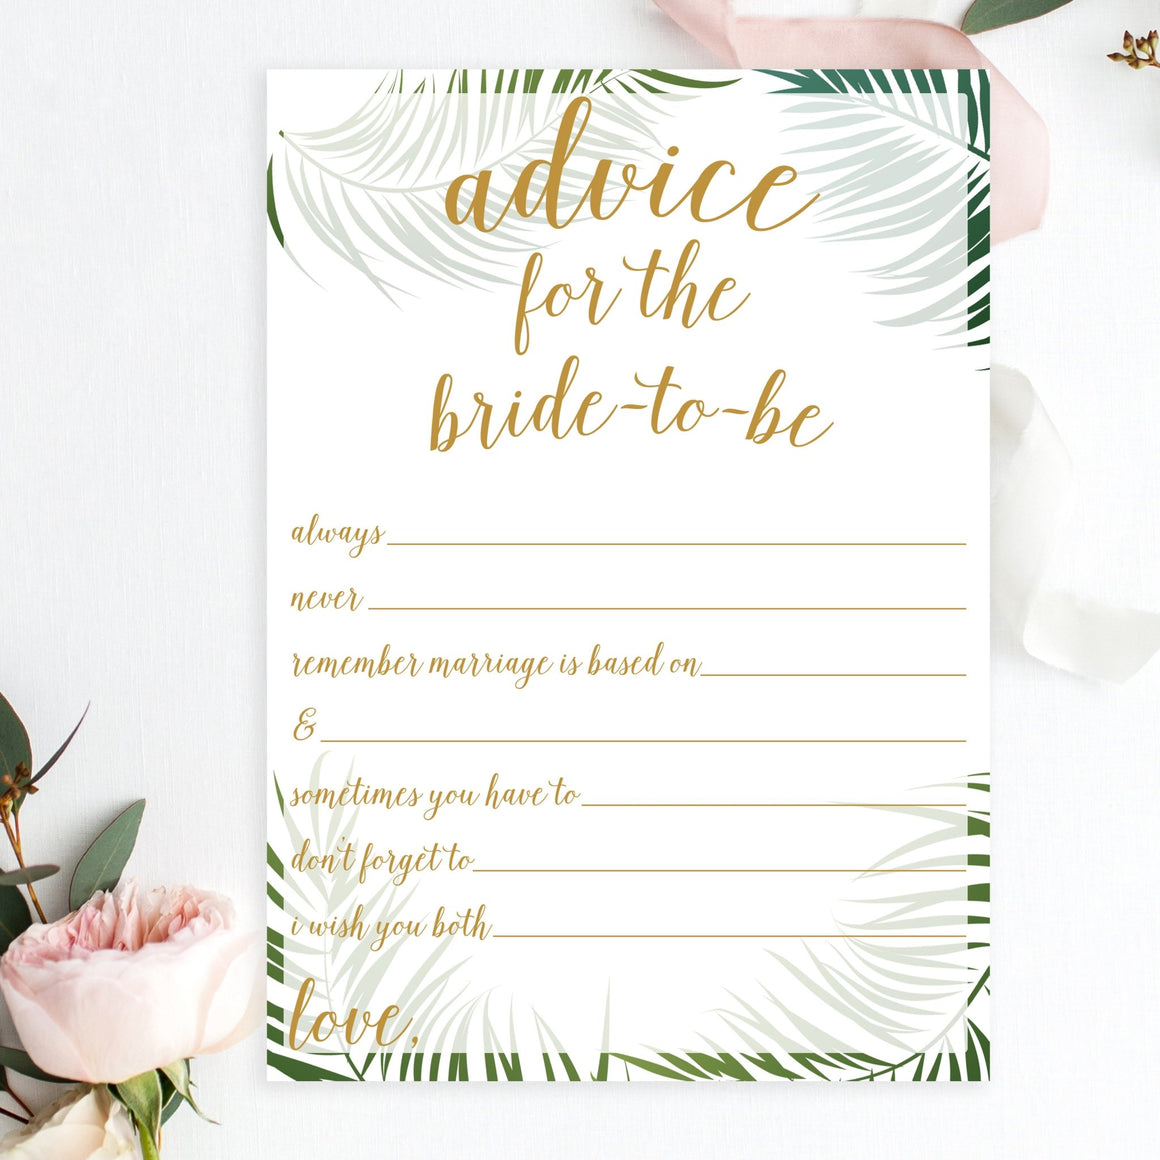 Advice for the Bride-To-Be (Statements) - Tropical Printable - Pretty Collected